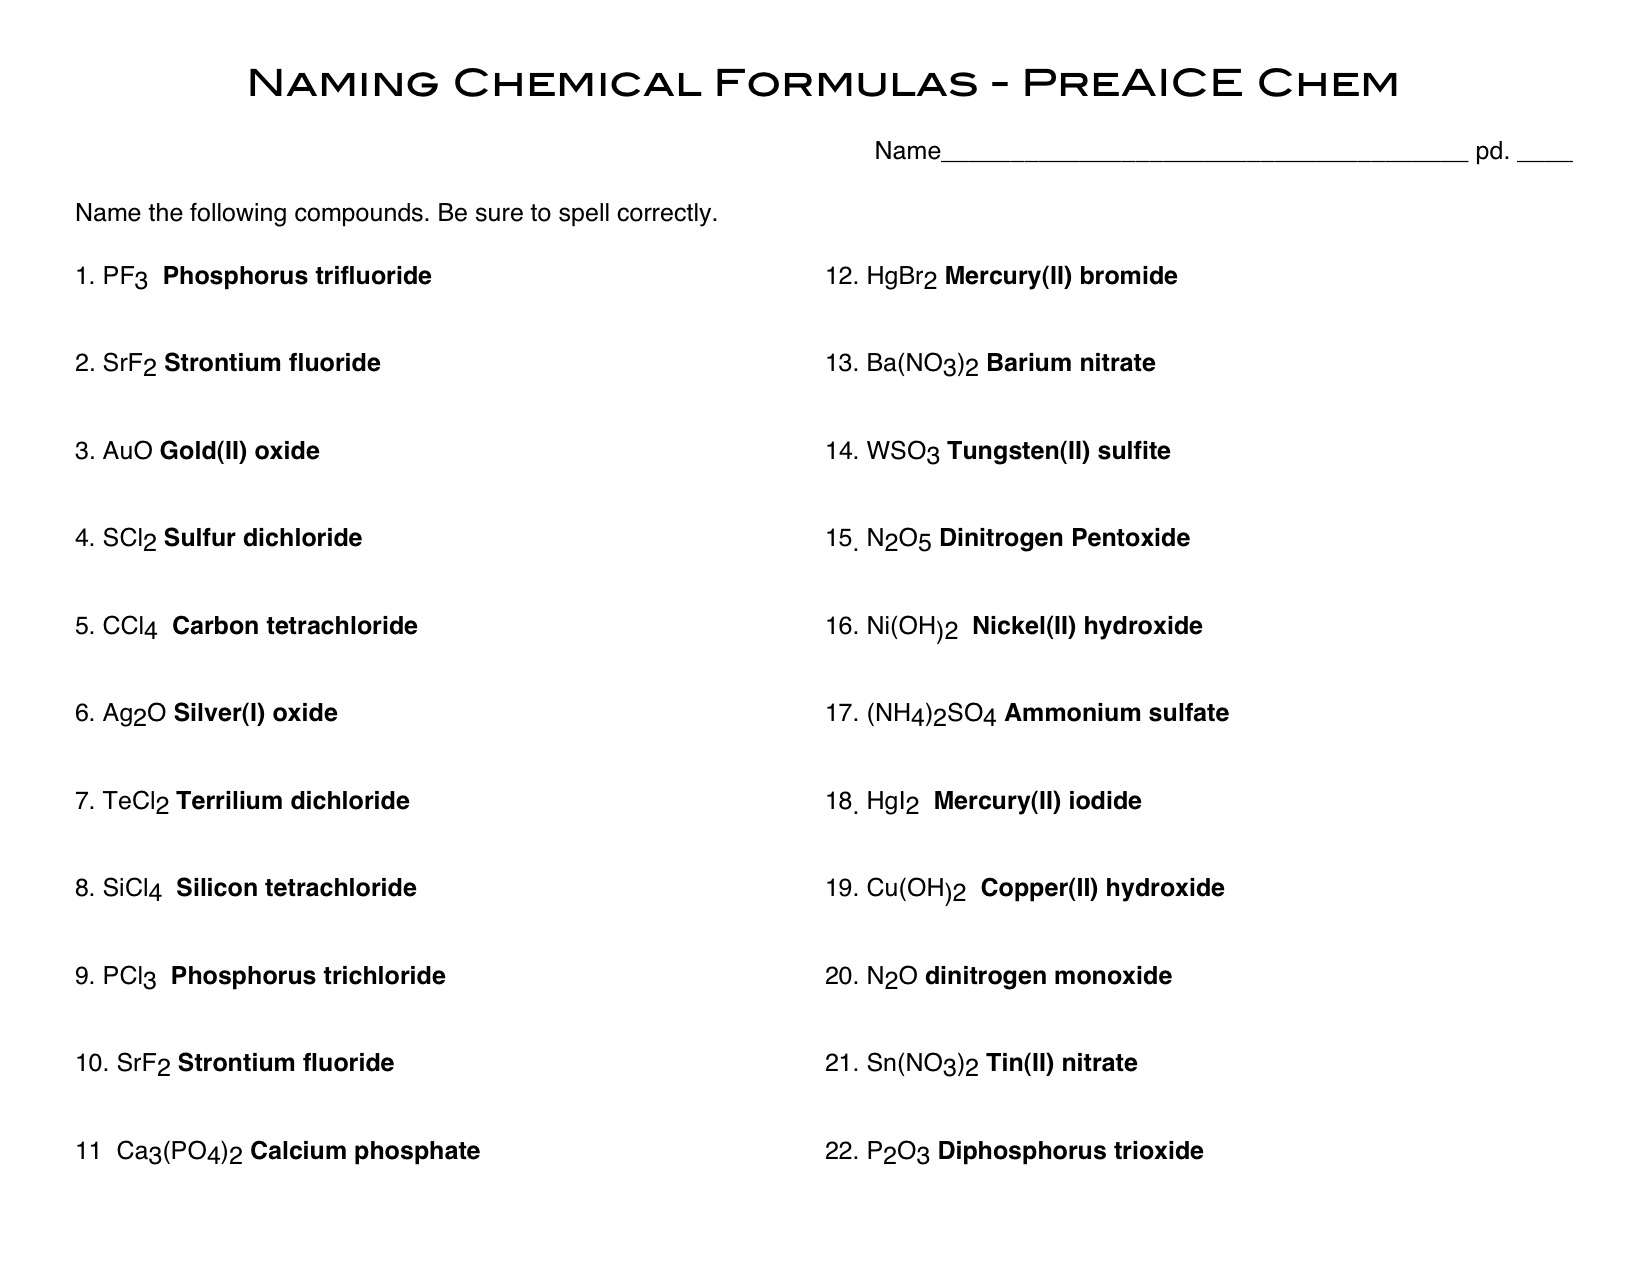 Come Together Chemical Bonding Worksheet Answers – Chemical Bonding Worksheet